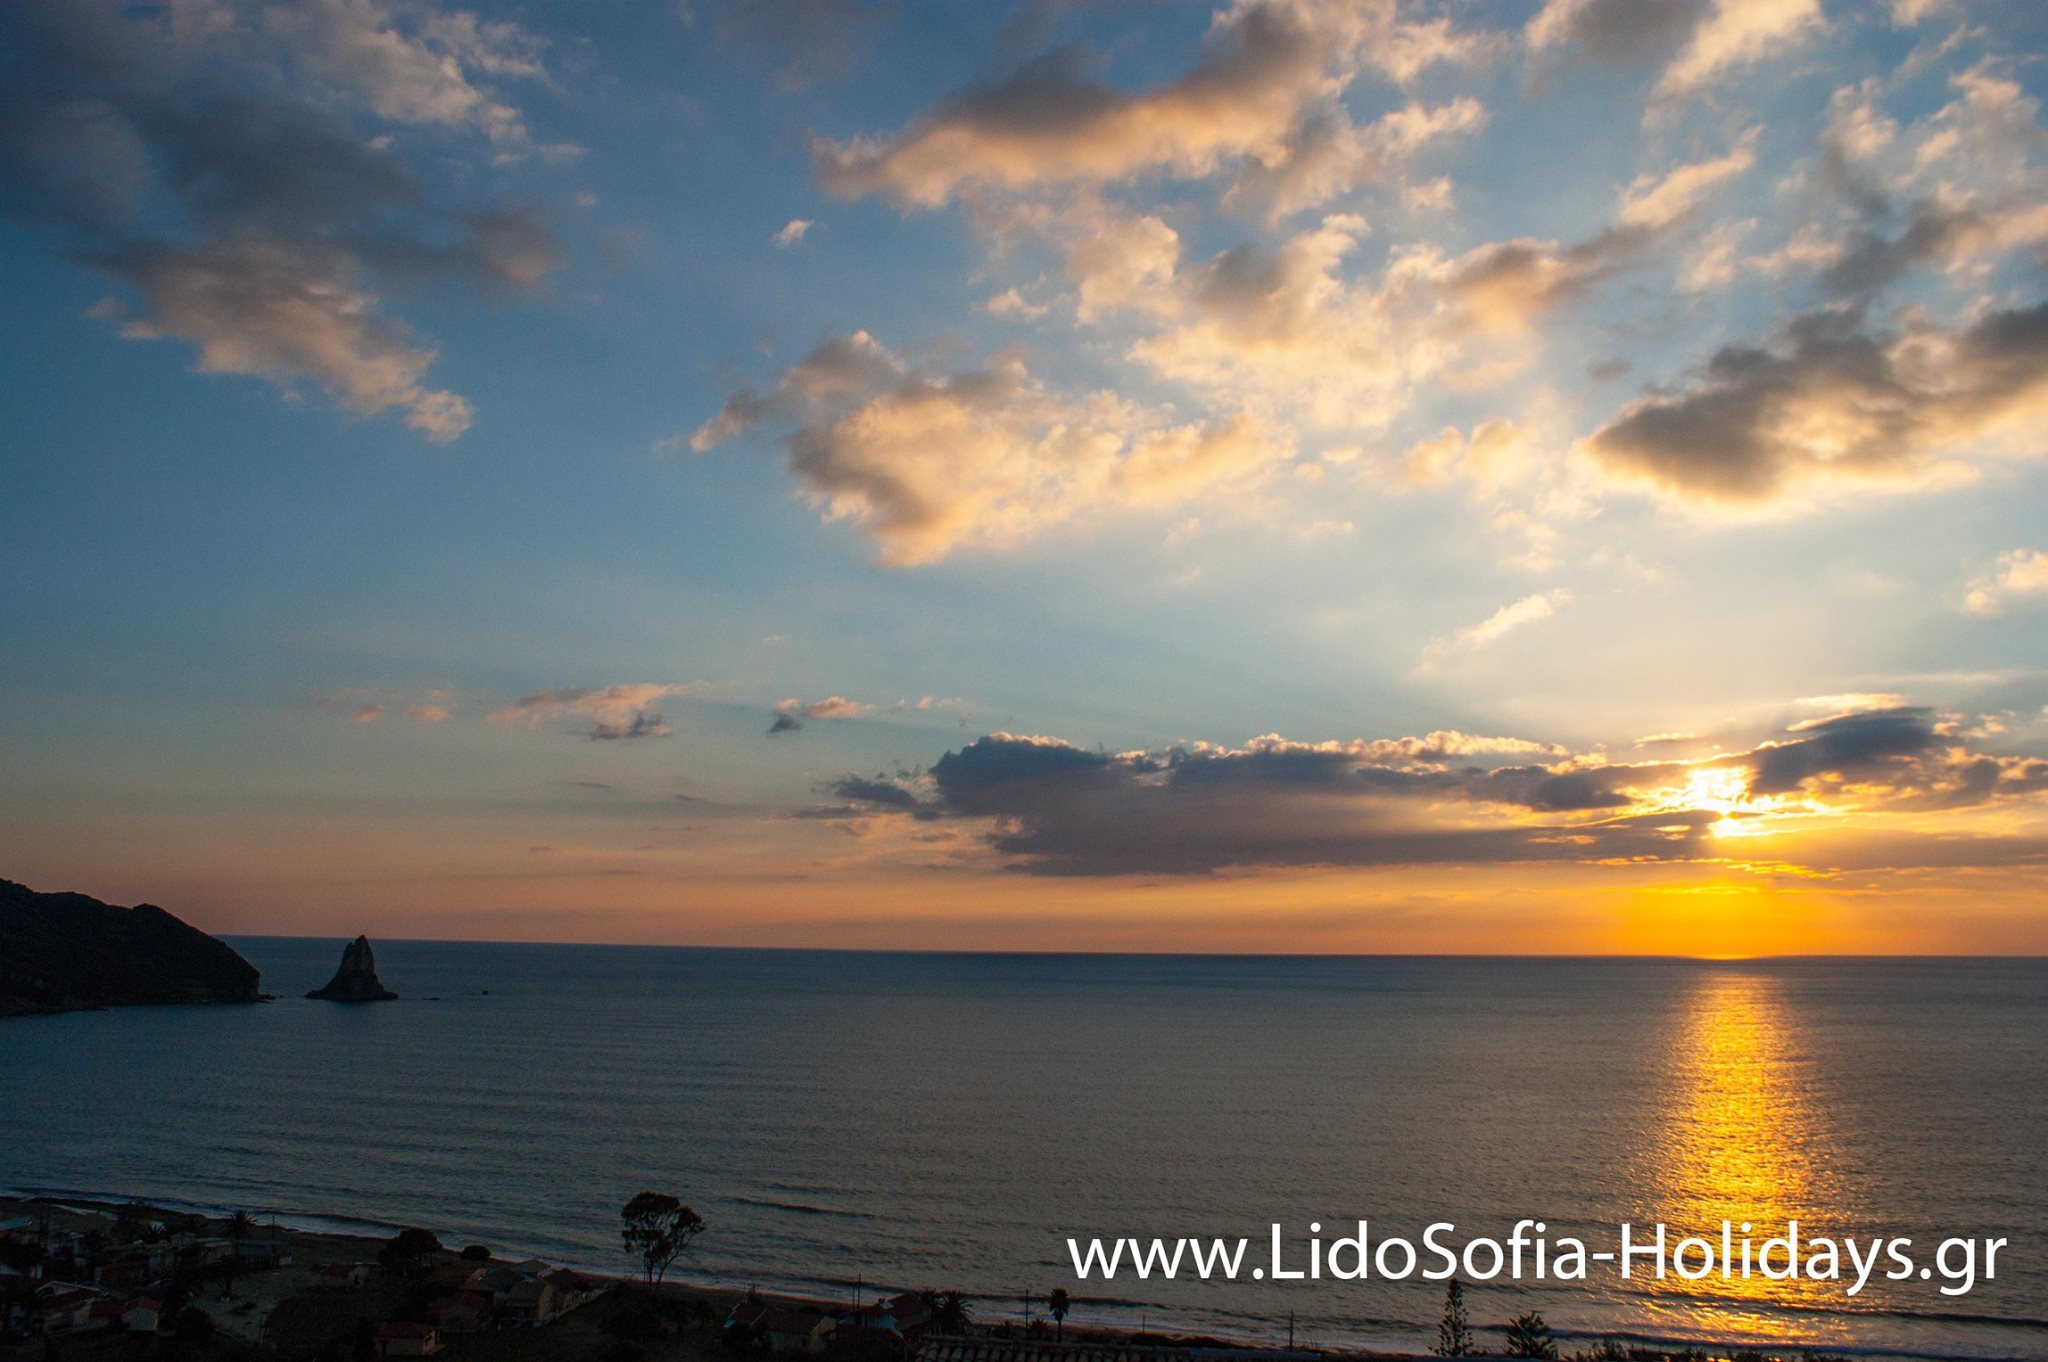 Corfu Holiday Rentals -  - Lido Sofia Holidays Apartments Agios Gordios